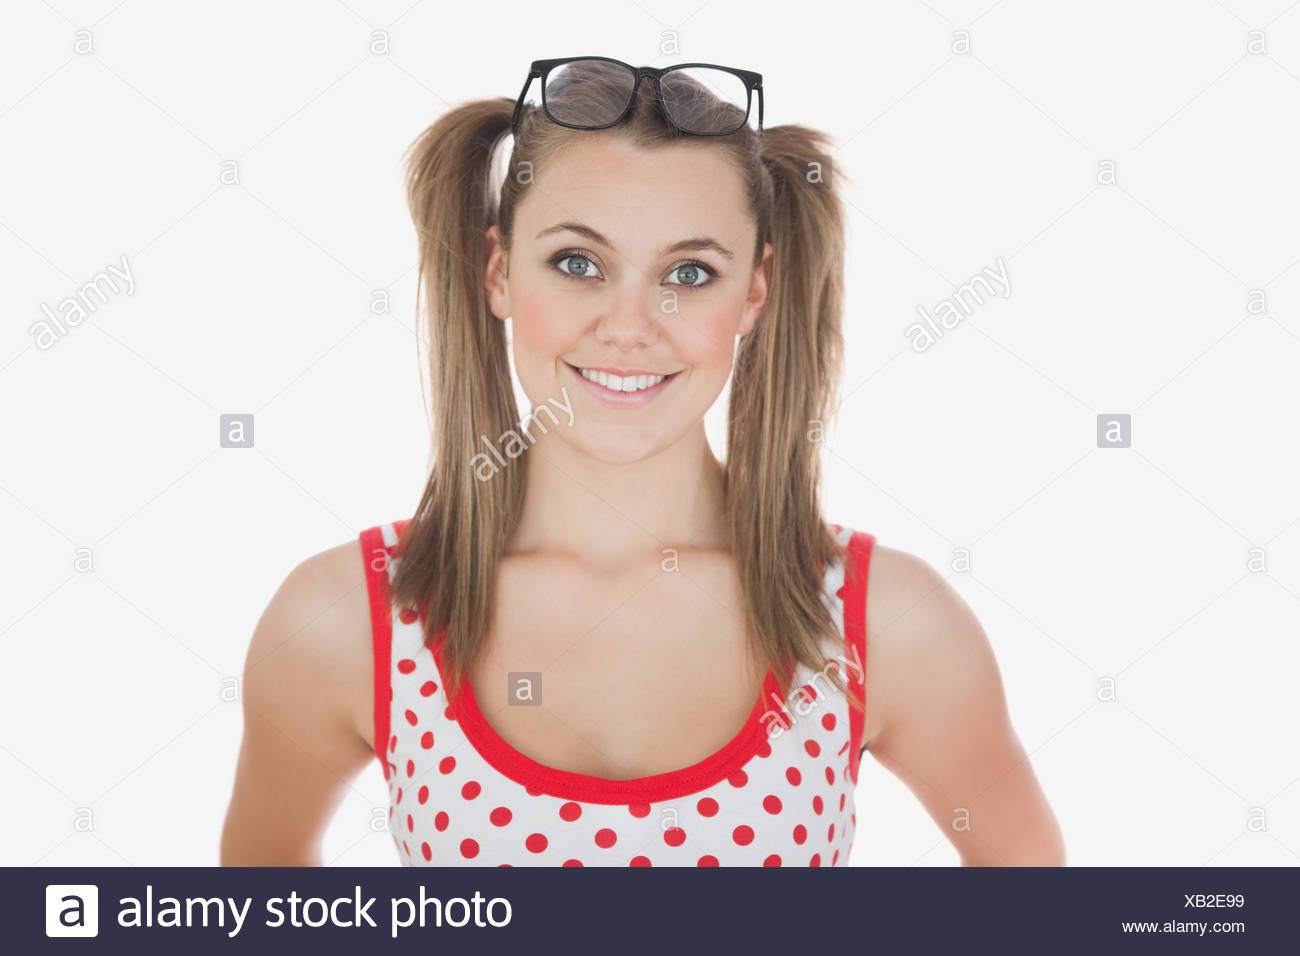 Young woman with long ponytails - Stock Image